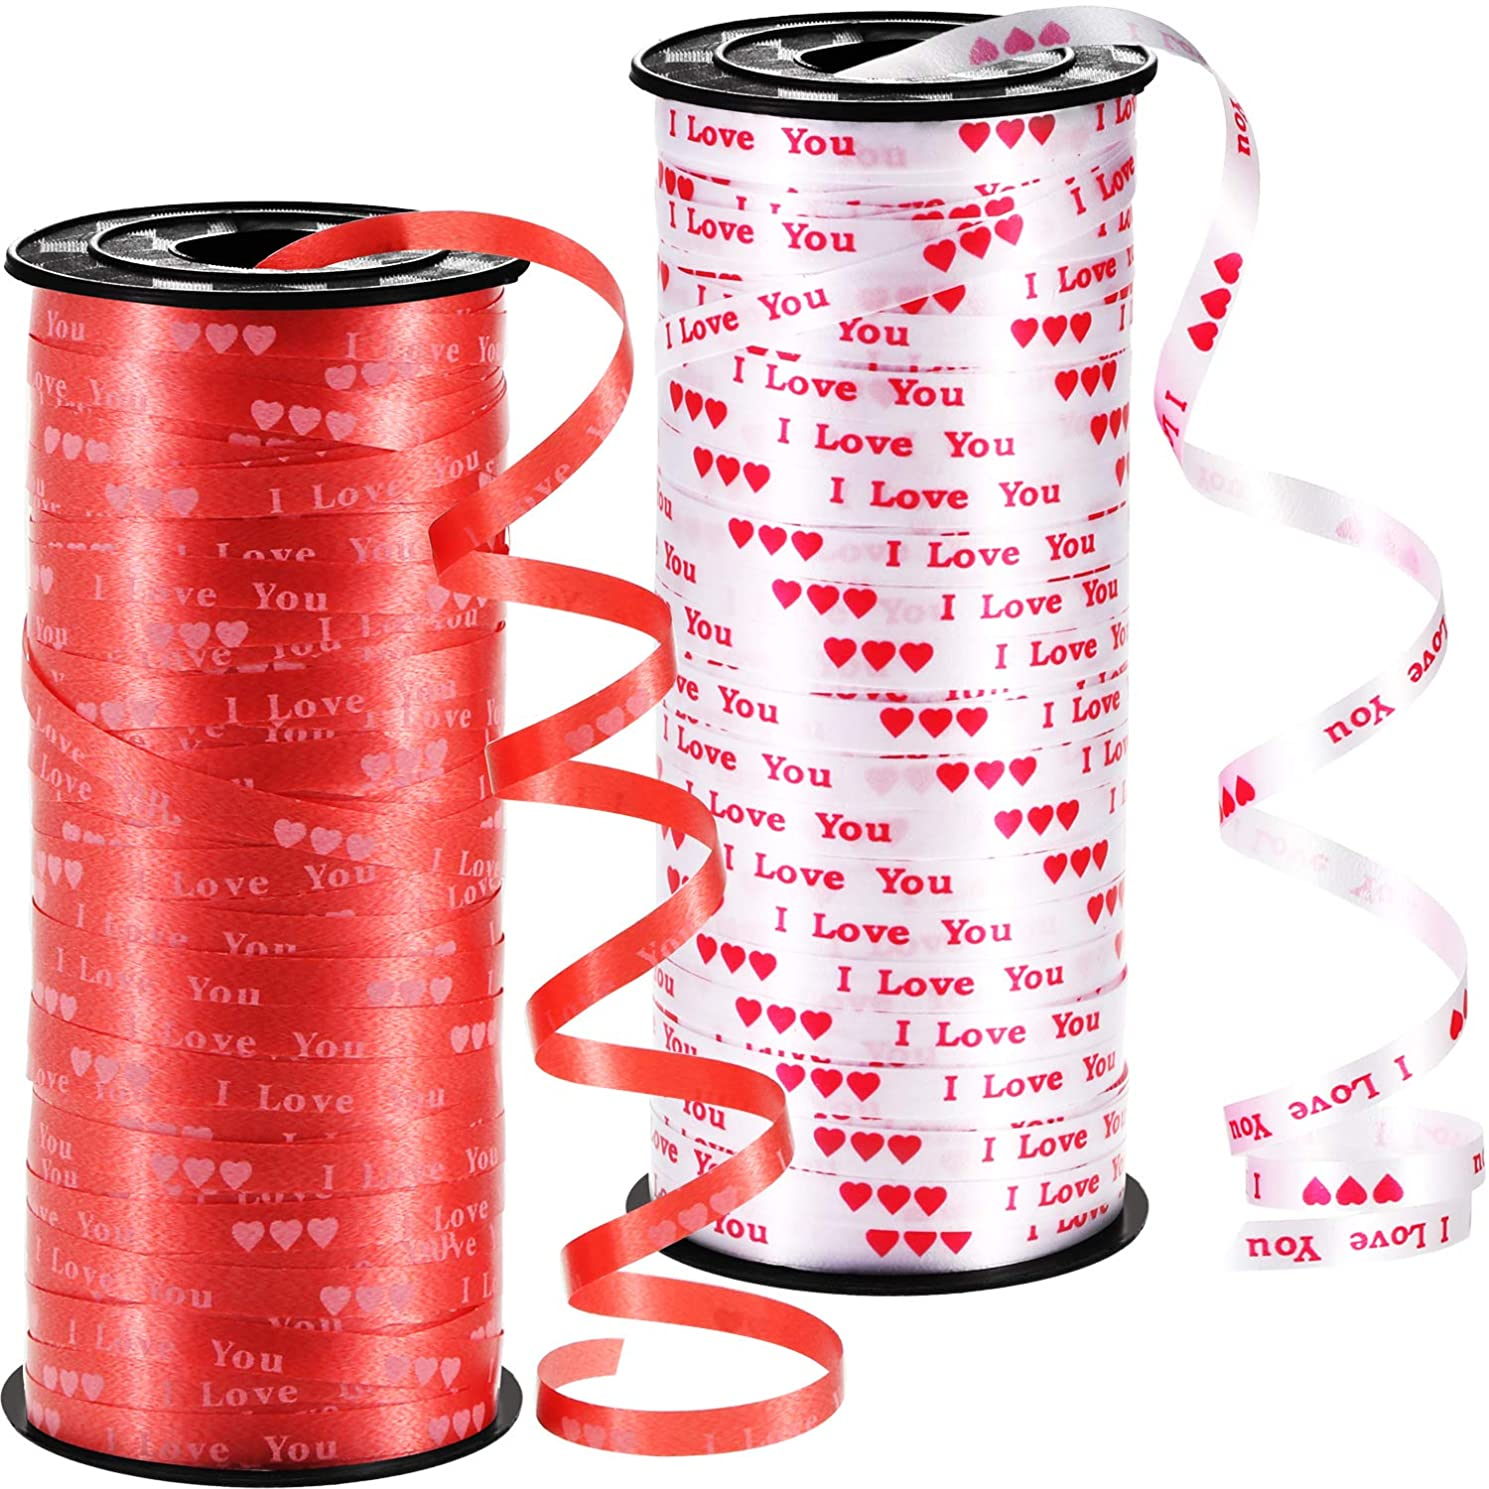 Chengu 2 Pieces Valentine Curling Ribbon Heart Printed Ribbon Love Balloon Curling Ribbon for Gift Wrapping Party Supplies (Red, White)